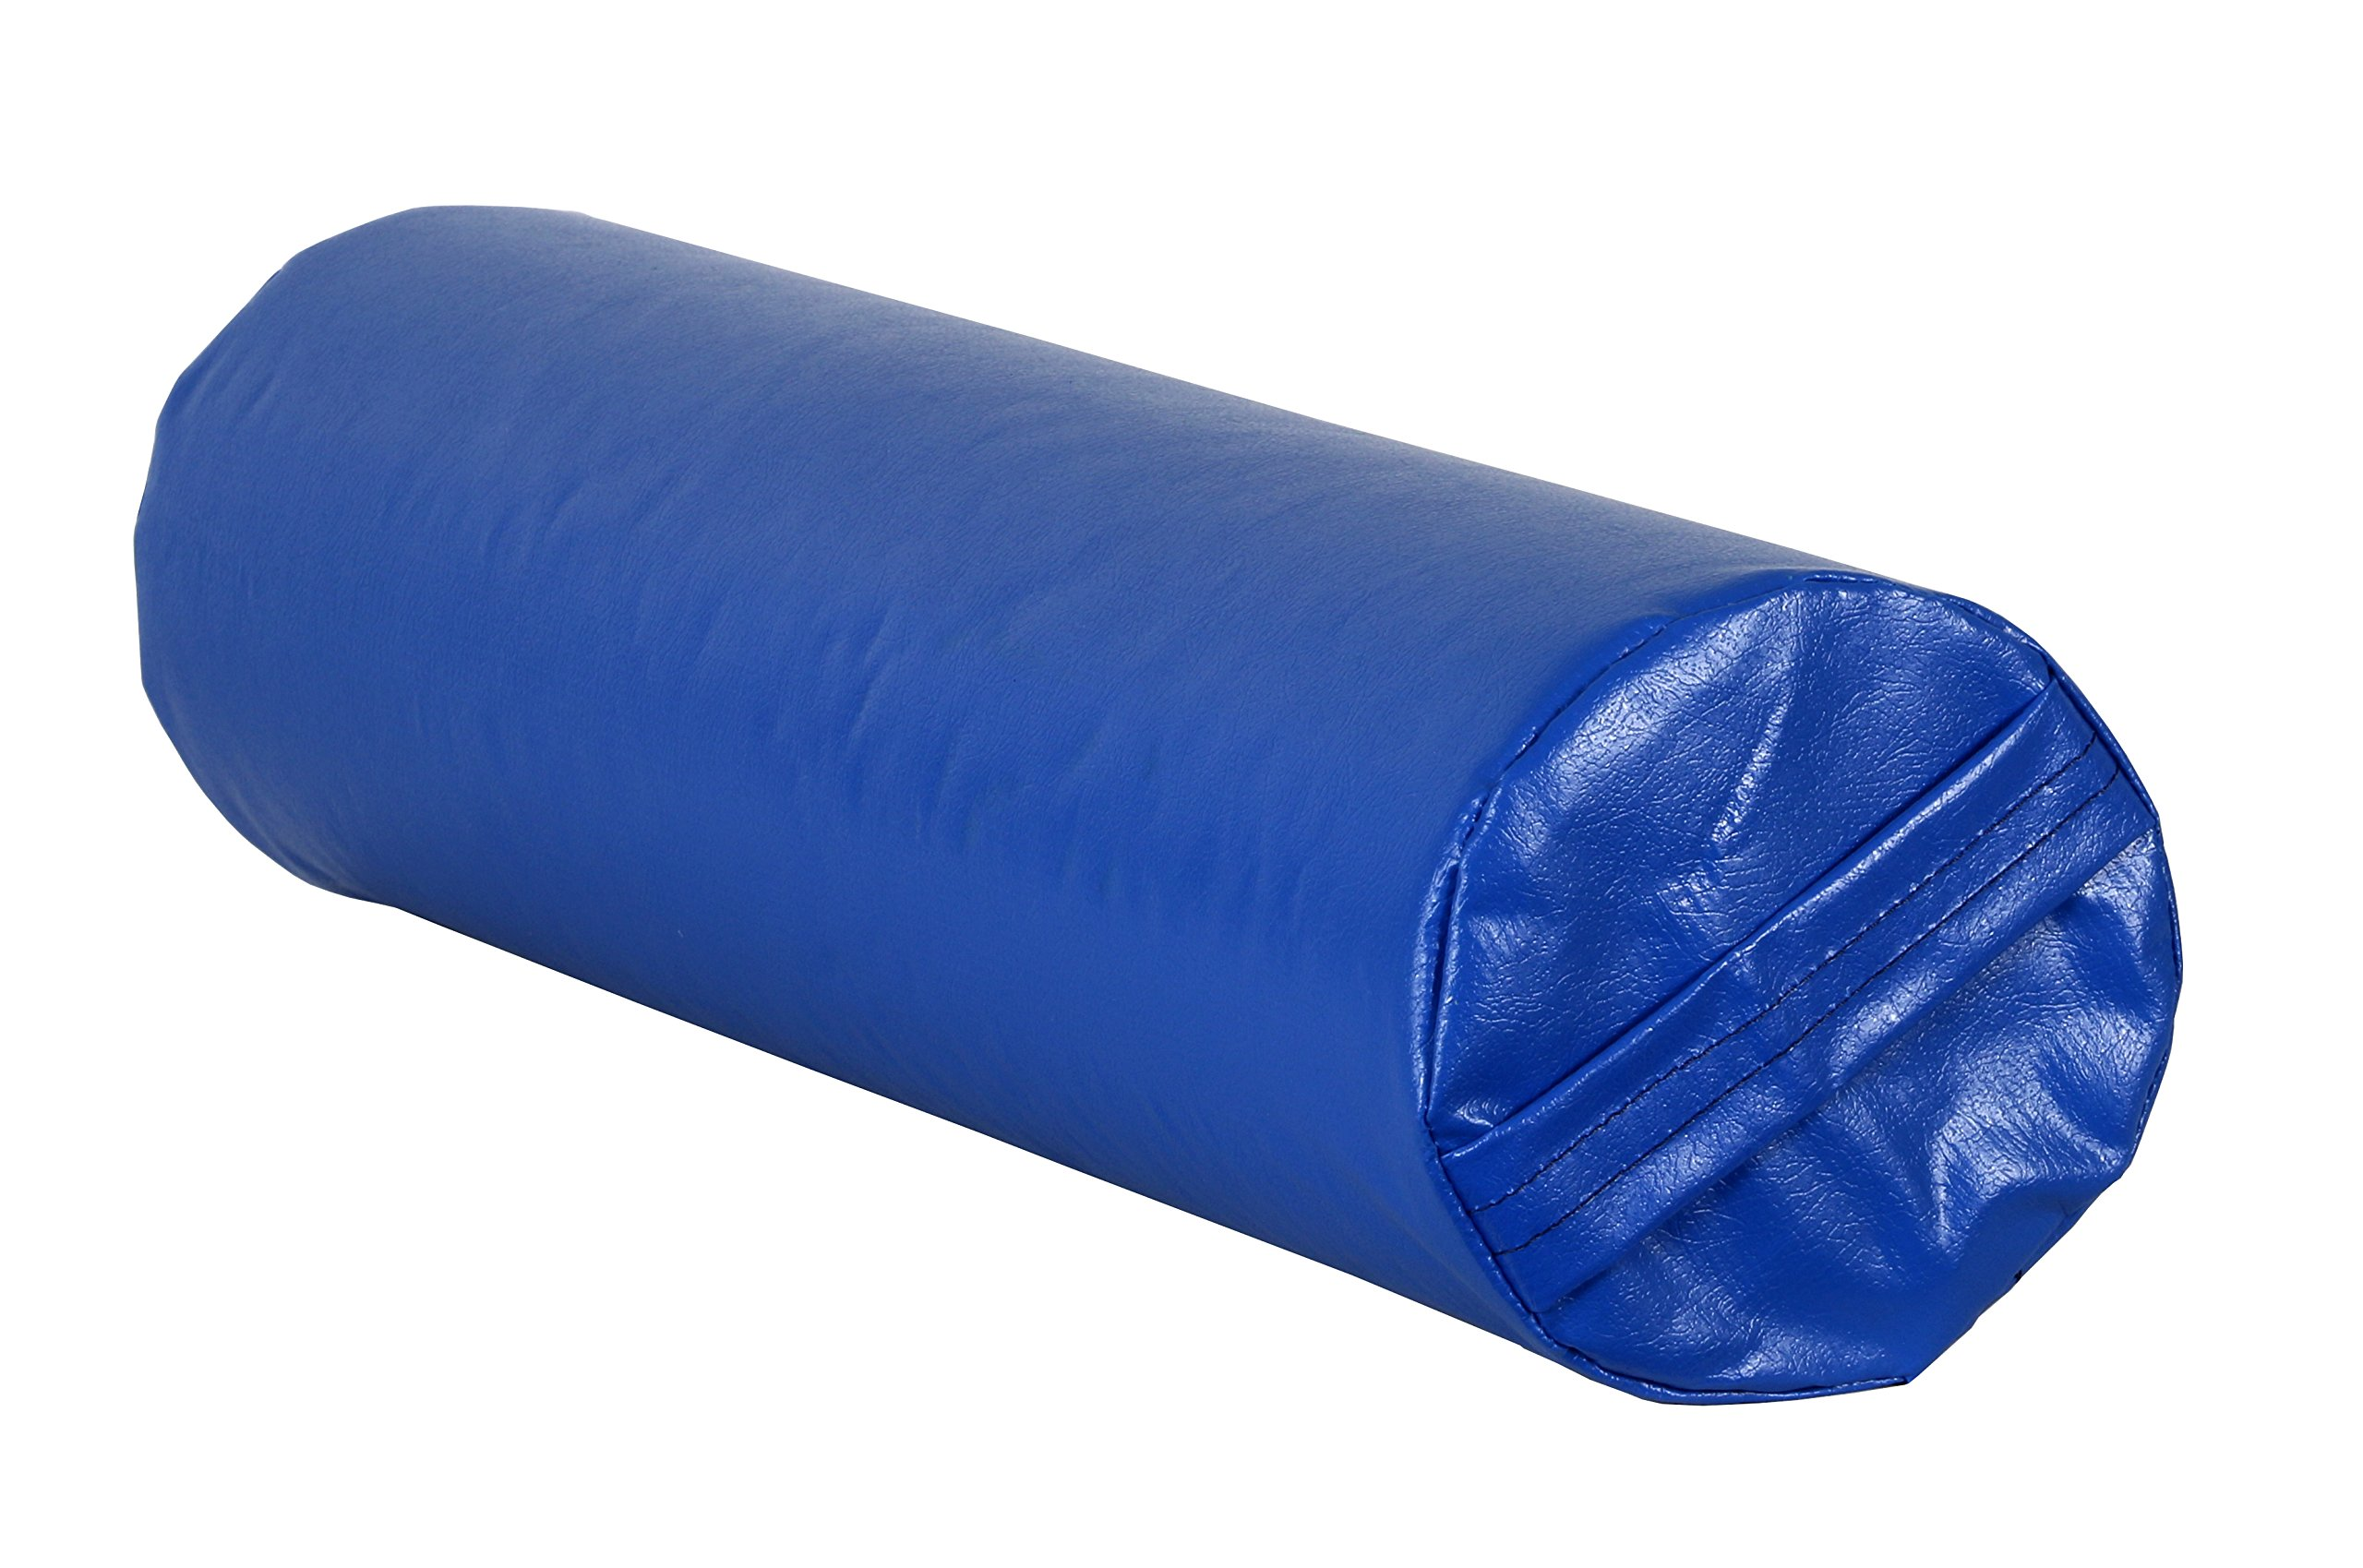 CanDo 31-2011S Positioning Roll, Foam with Vinyl Cover, Soft, 24'' x 6'' Diameter, Blue